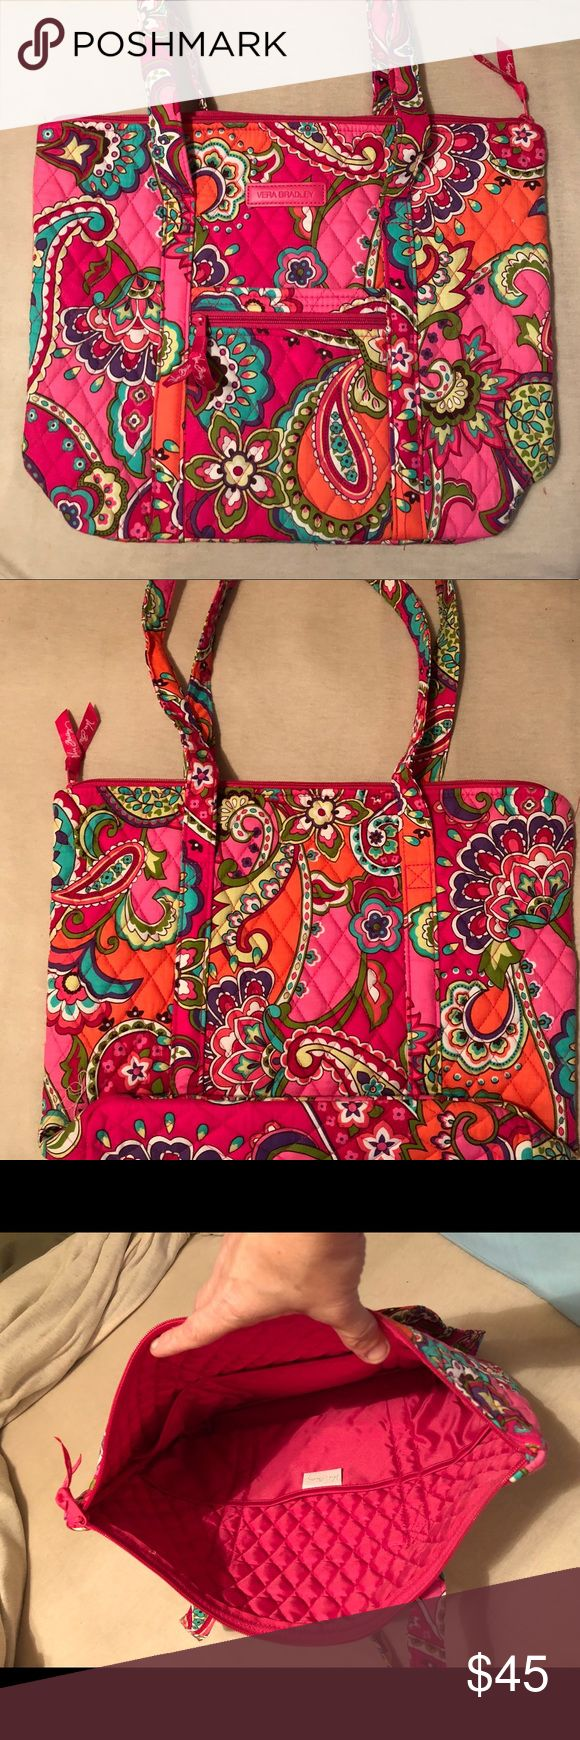 Vera Bradley Villager Shoulder Bag – Pink Swirls **SELLS FOR $68.00 IN STORE**  ** Cross-listed on three sites...will delete if it sells on another site. **  I bought this last Summer with my birthday discount at my local Vera Bradley store. I thought I'd like the pattern more than I do.  This is a brand new bag, still laying flat, I've never even put anything in it. Bags Shoulder Bags